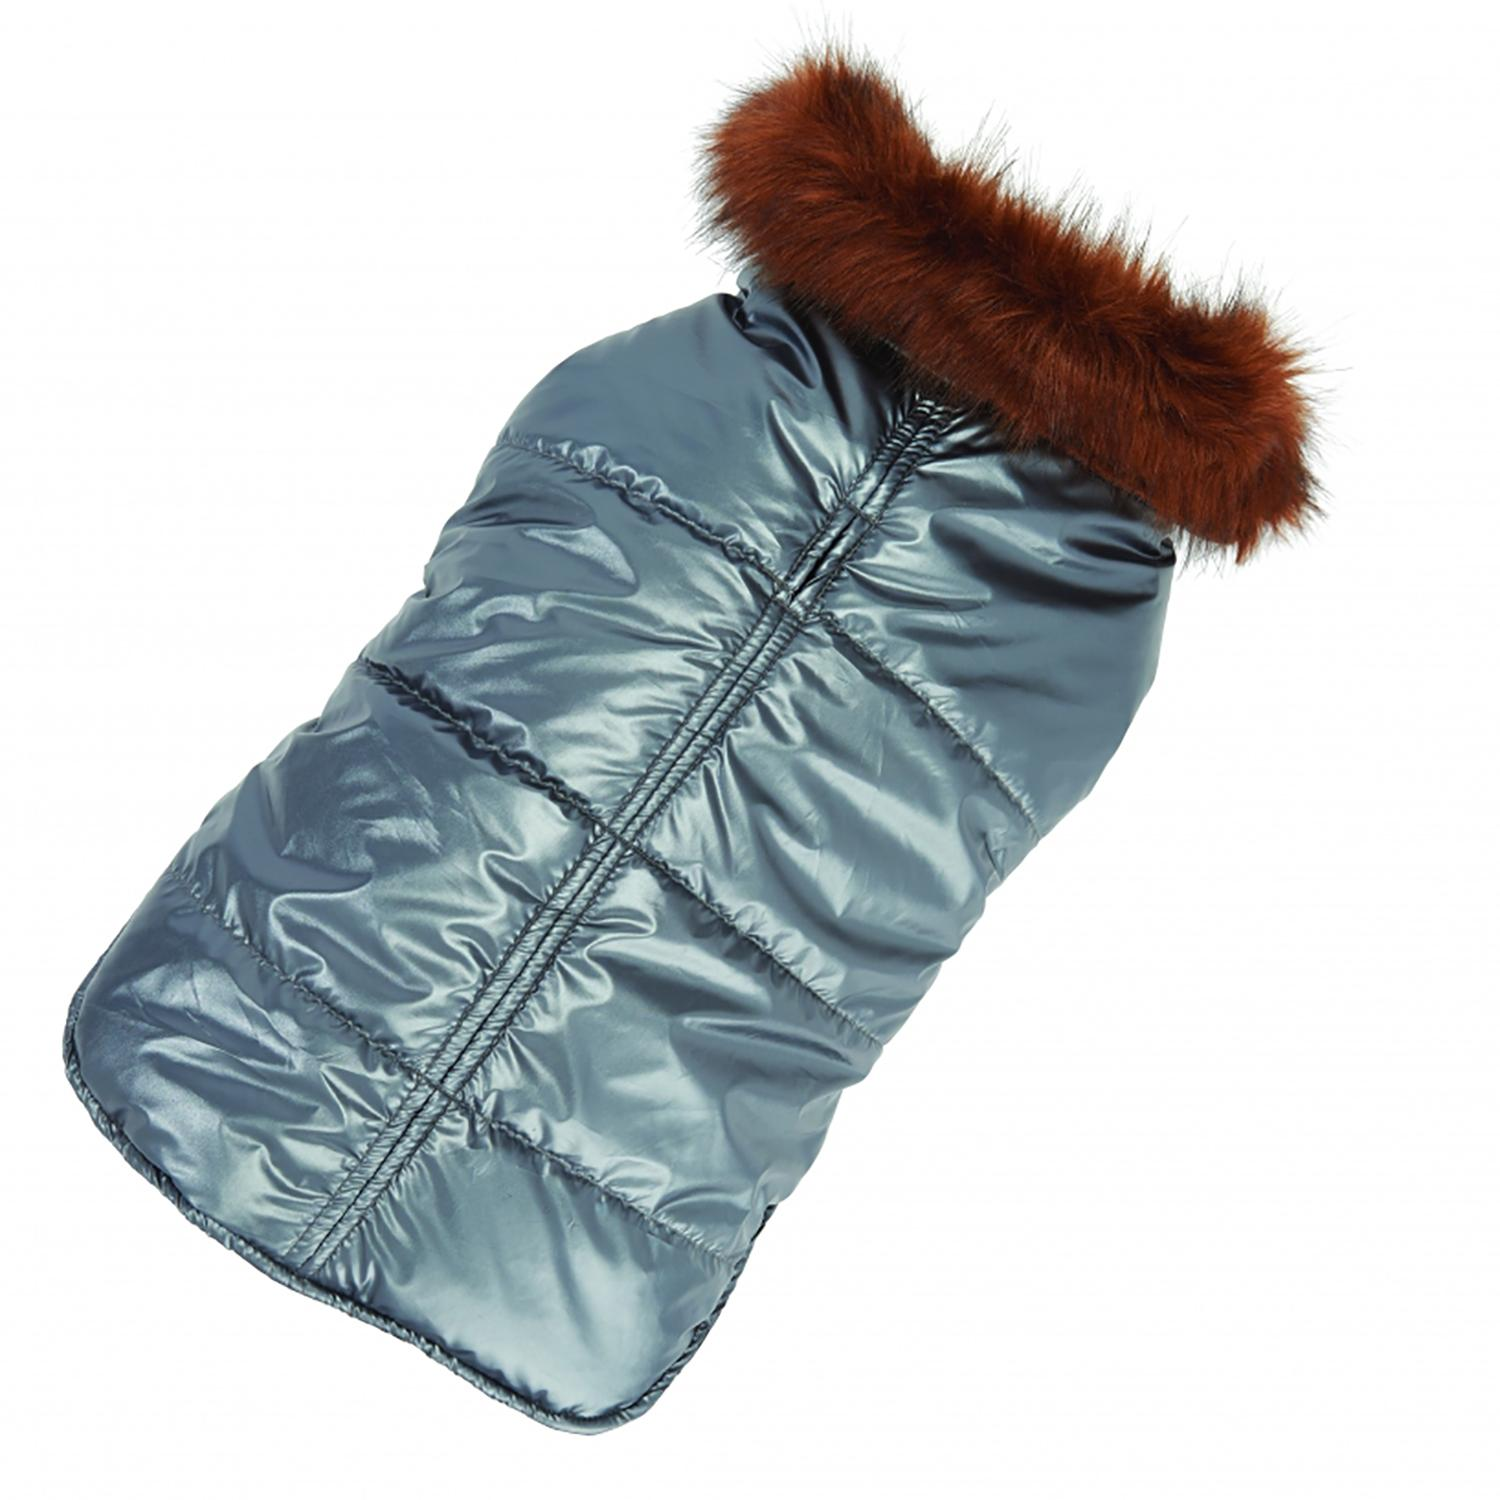 Aspen Puffer Dog Coat by Up Country - Silver